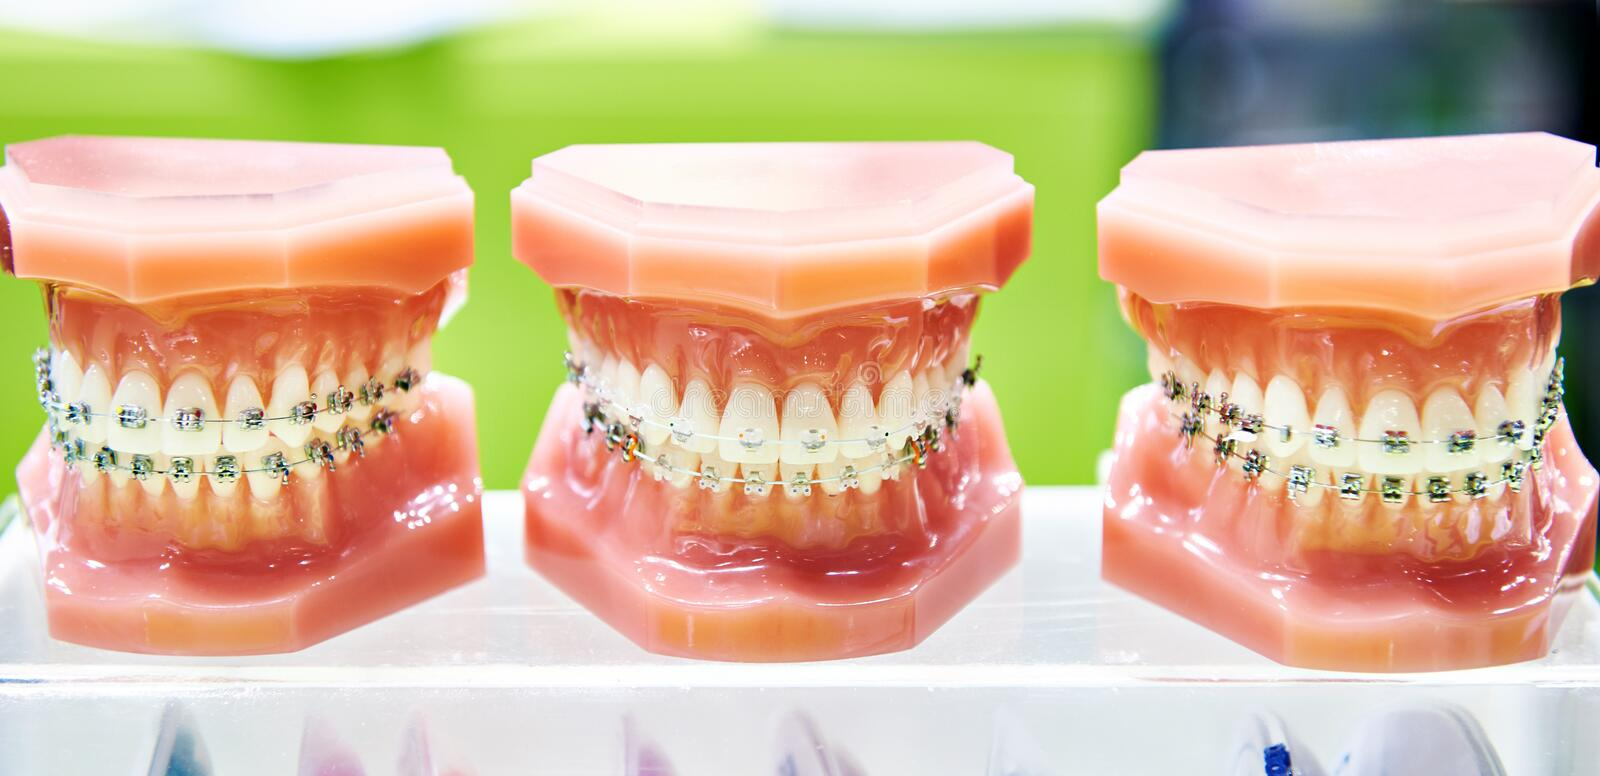 Dental model of the human jaws with braces royalty free stock photo